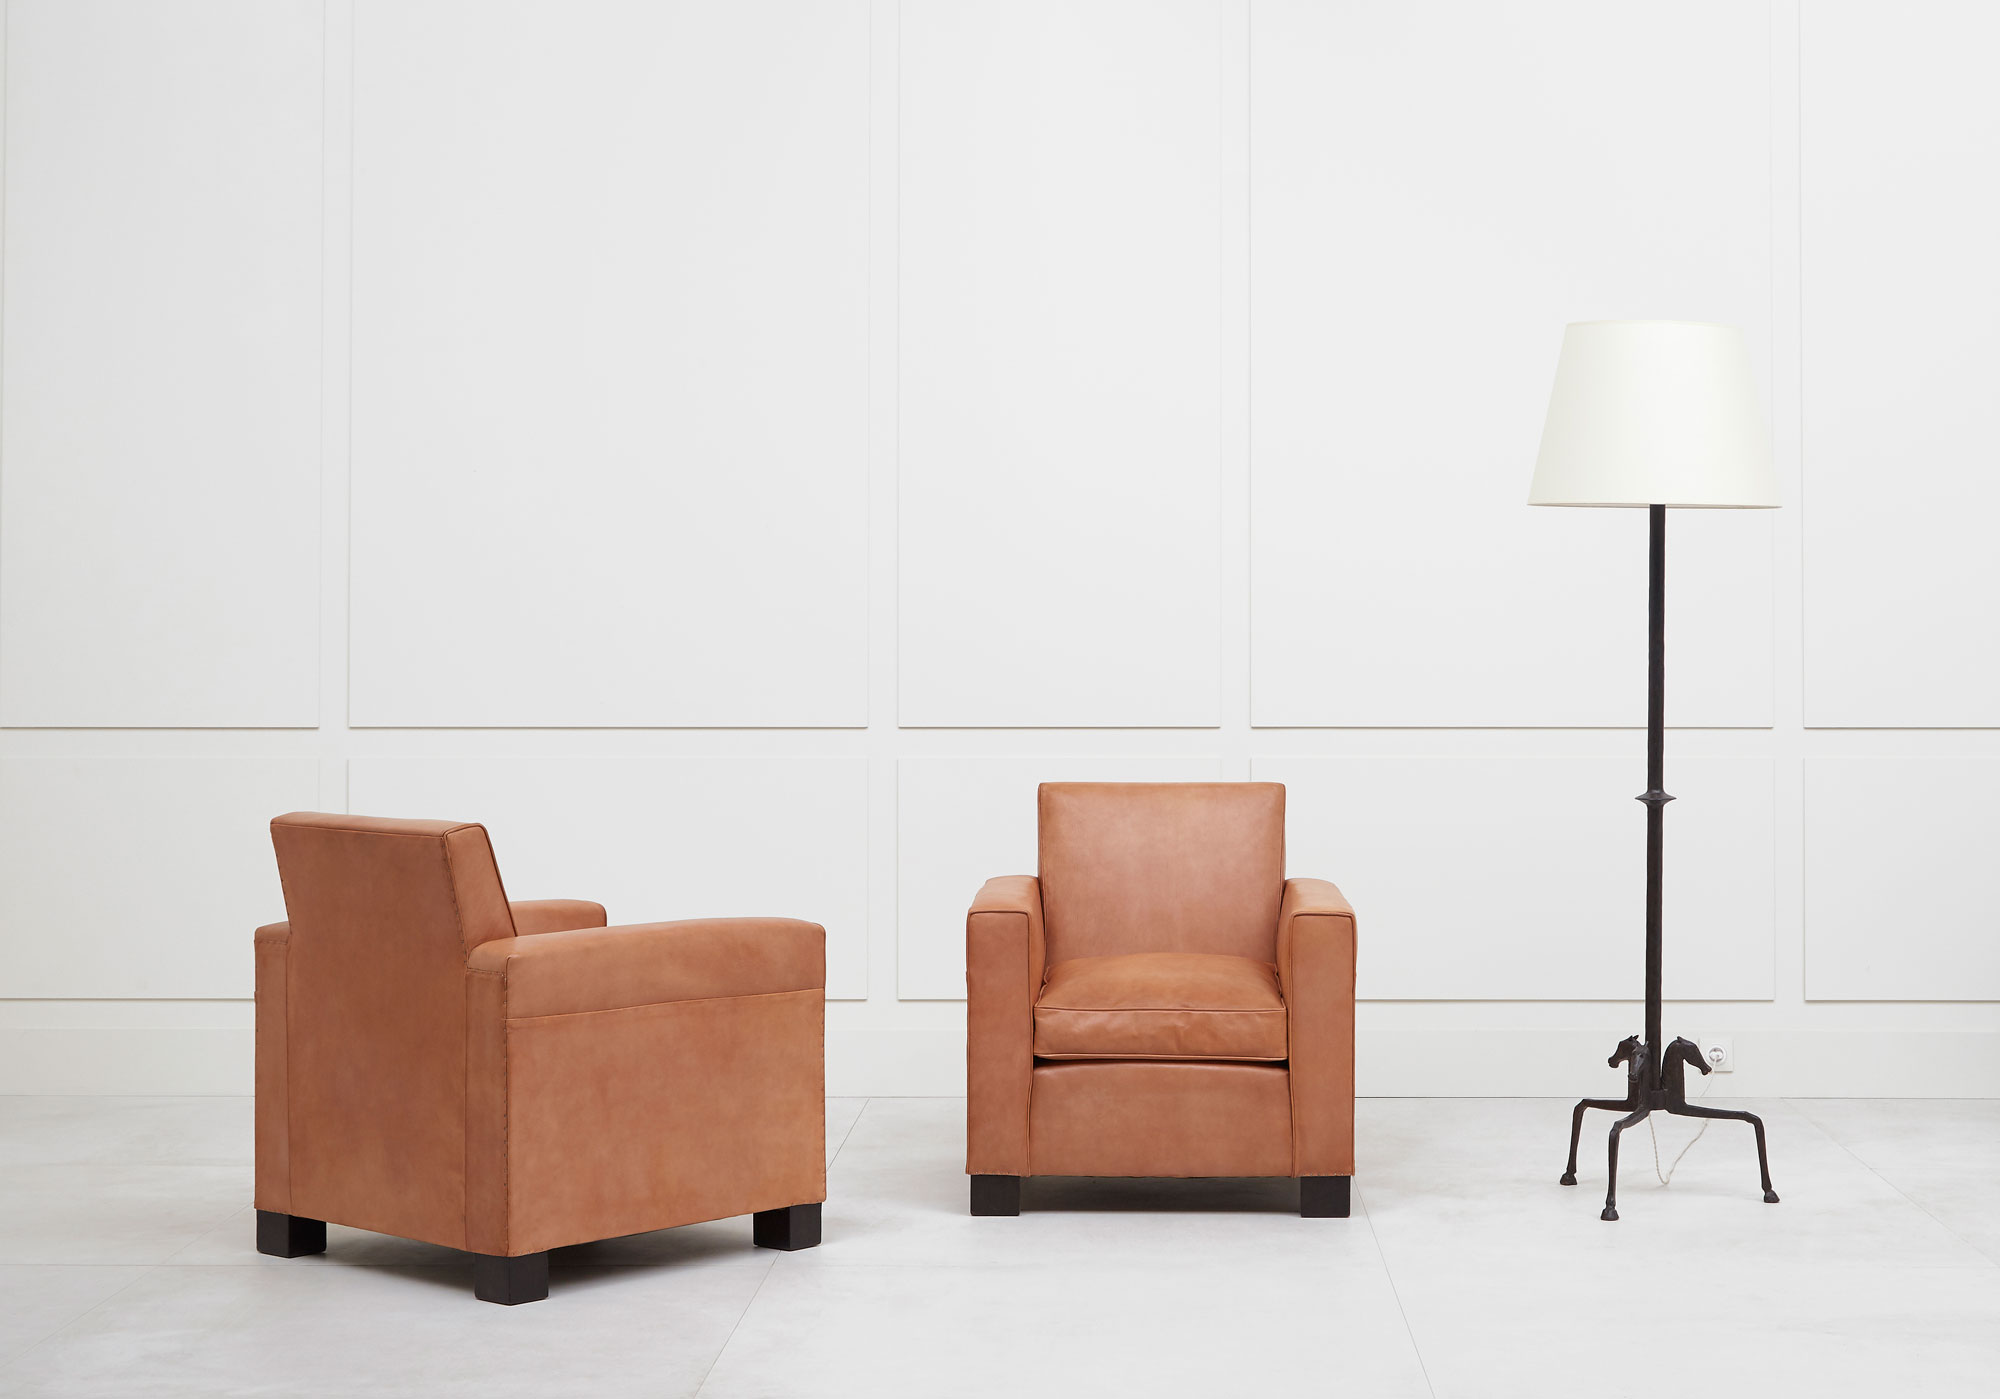 Jean-Charles Moreux, Rare pair of leather armchairs, vue 03